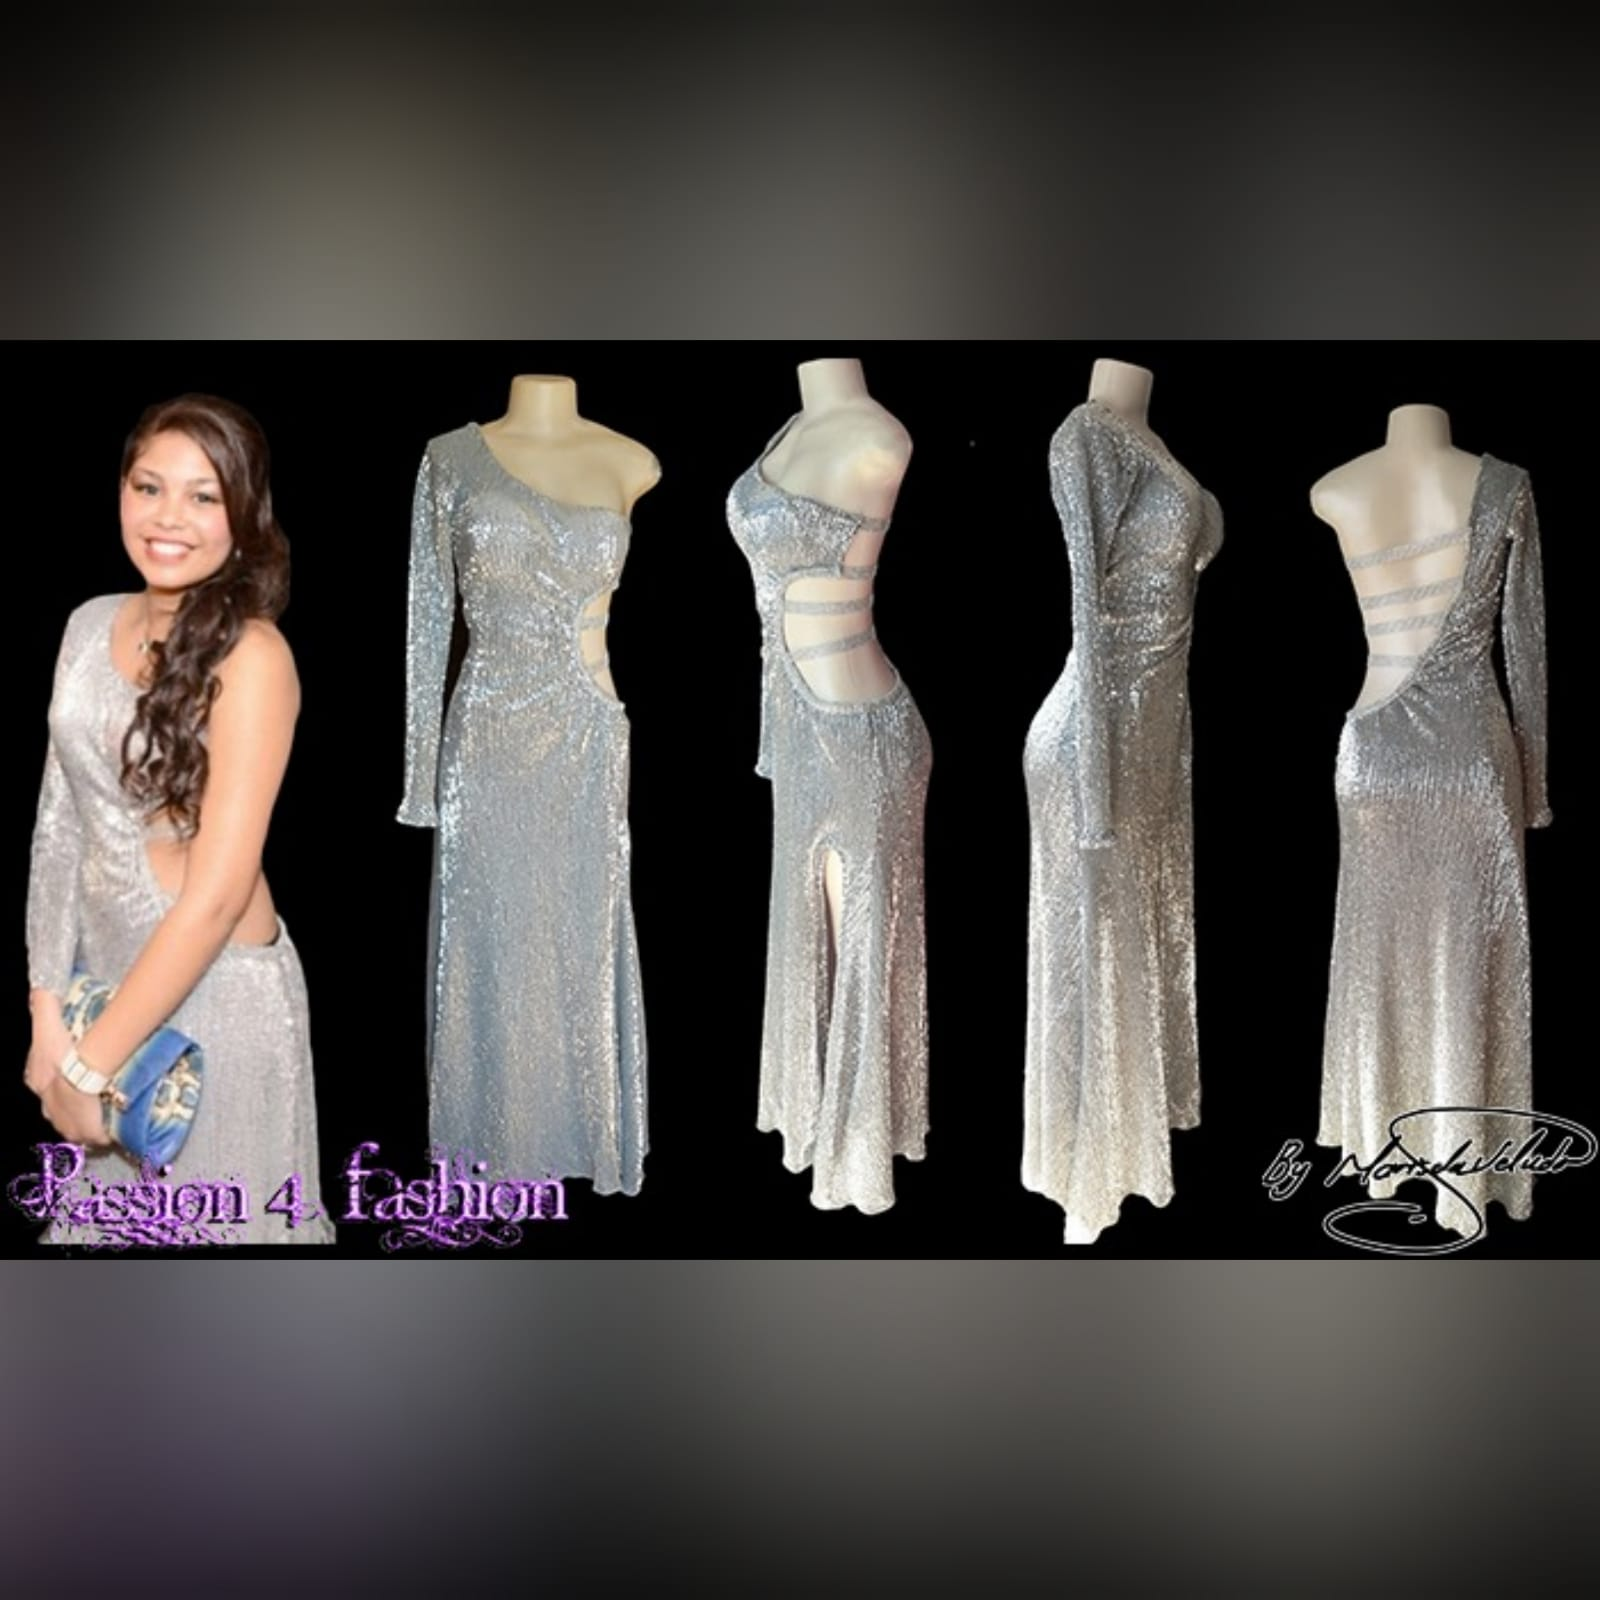 Silver sequins long sexy end year party dress 6 silver sequins long sexy end year party dress with side tummy and back opening detailed with straps, one sleeve and a train.